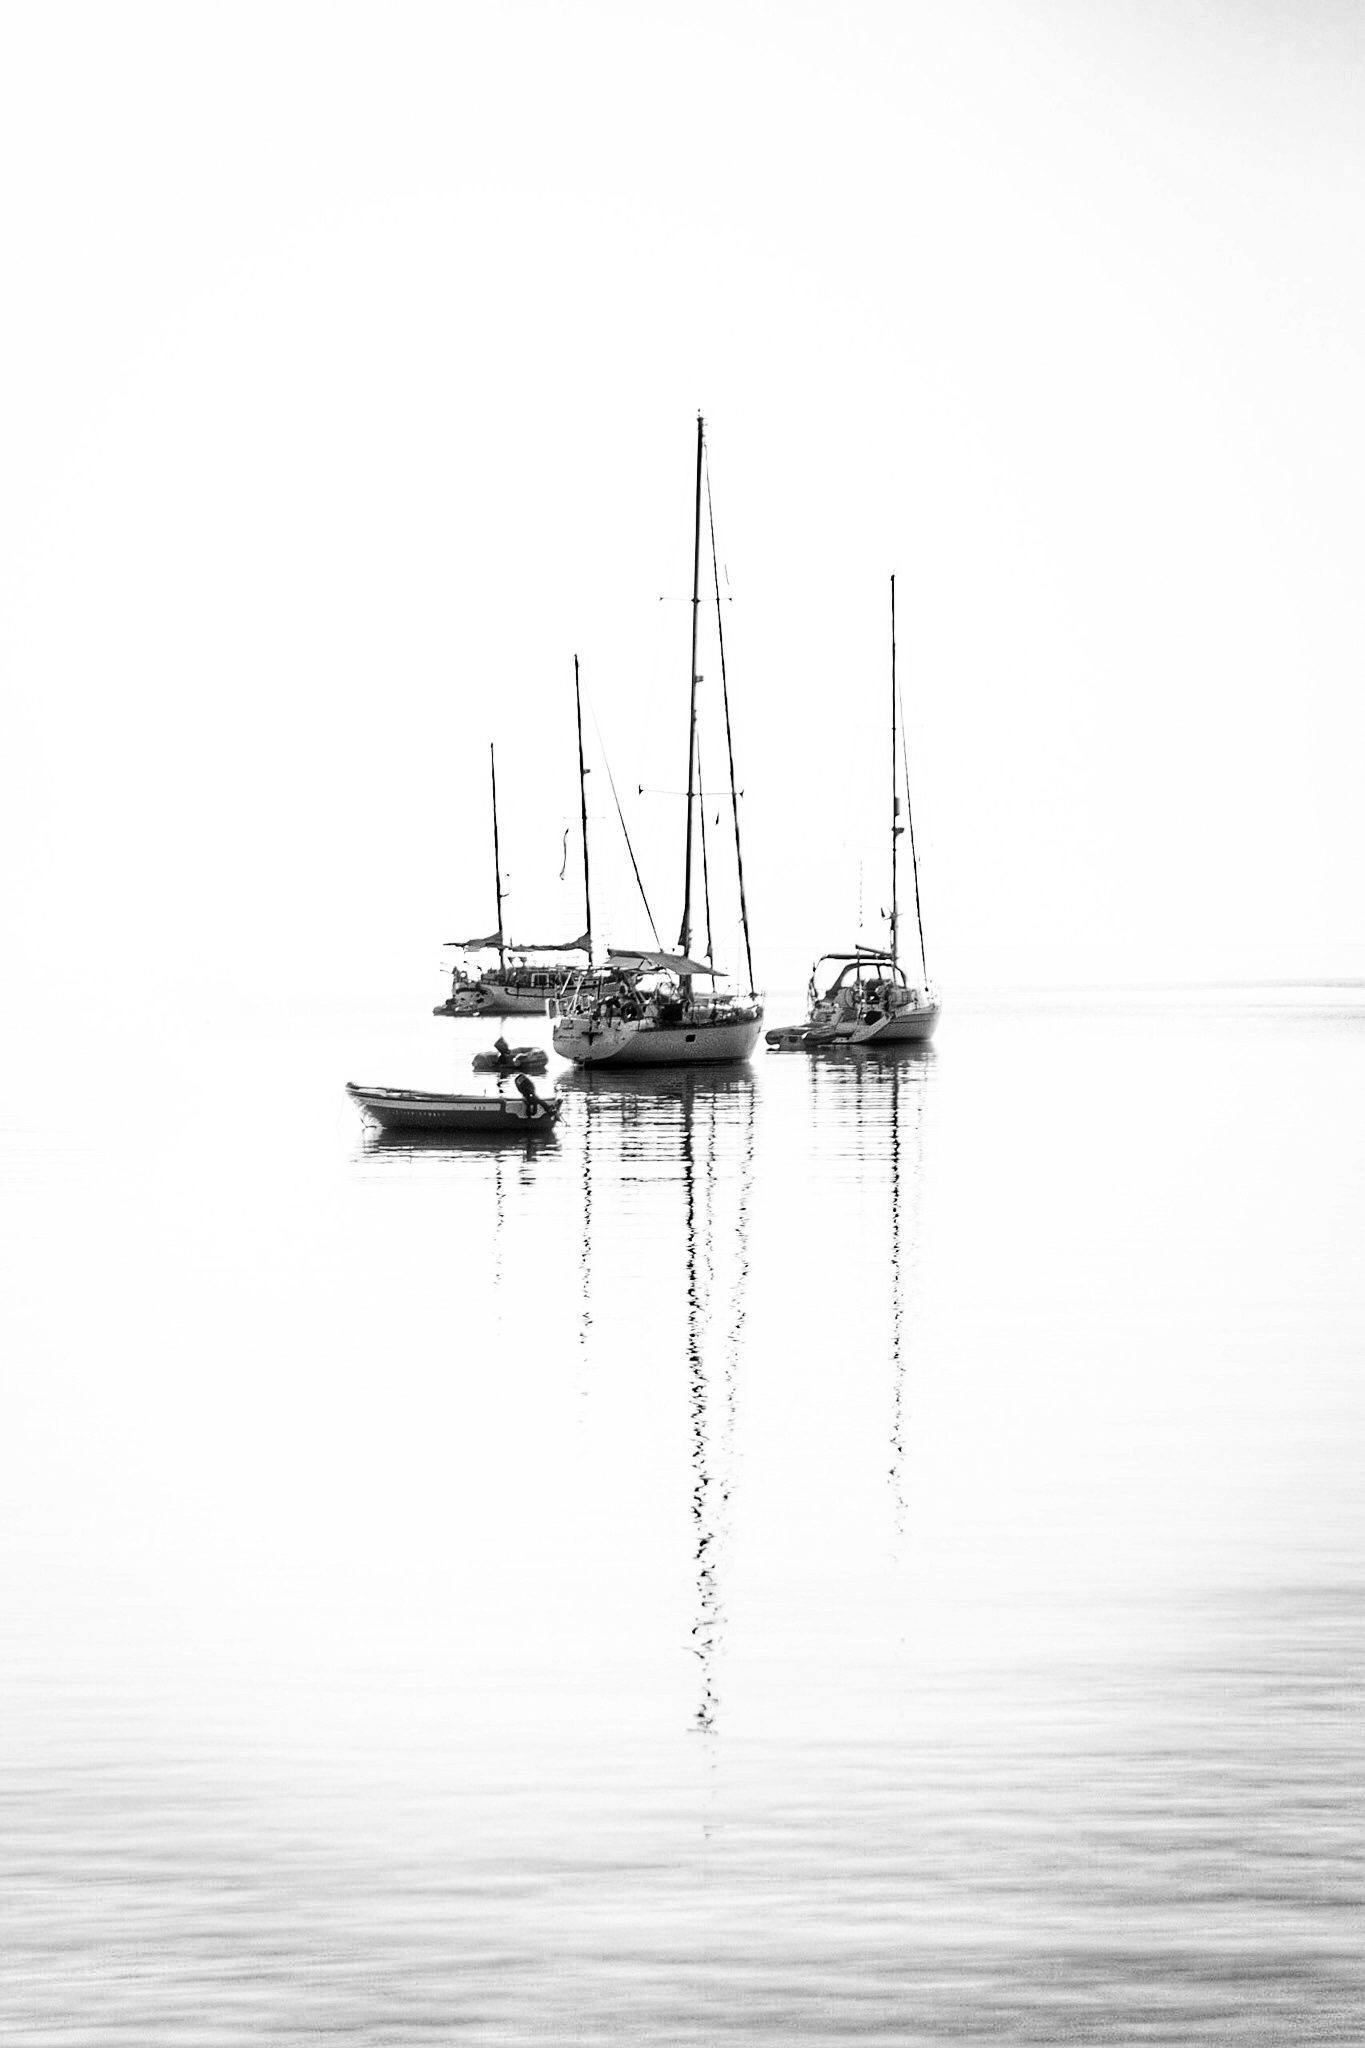 Black and white fine art photography by Rick McEvoy